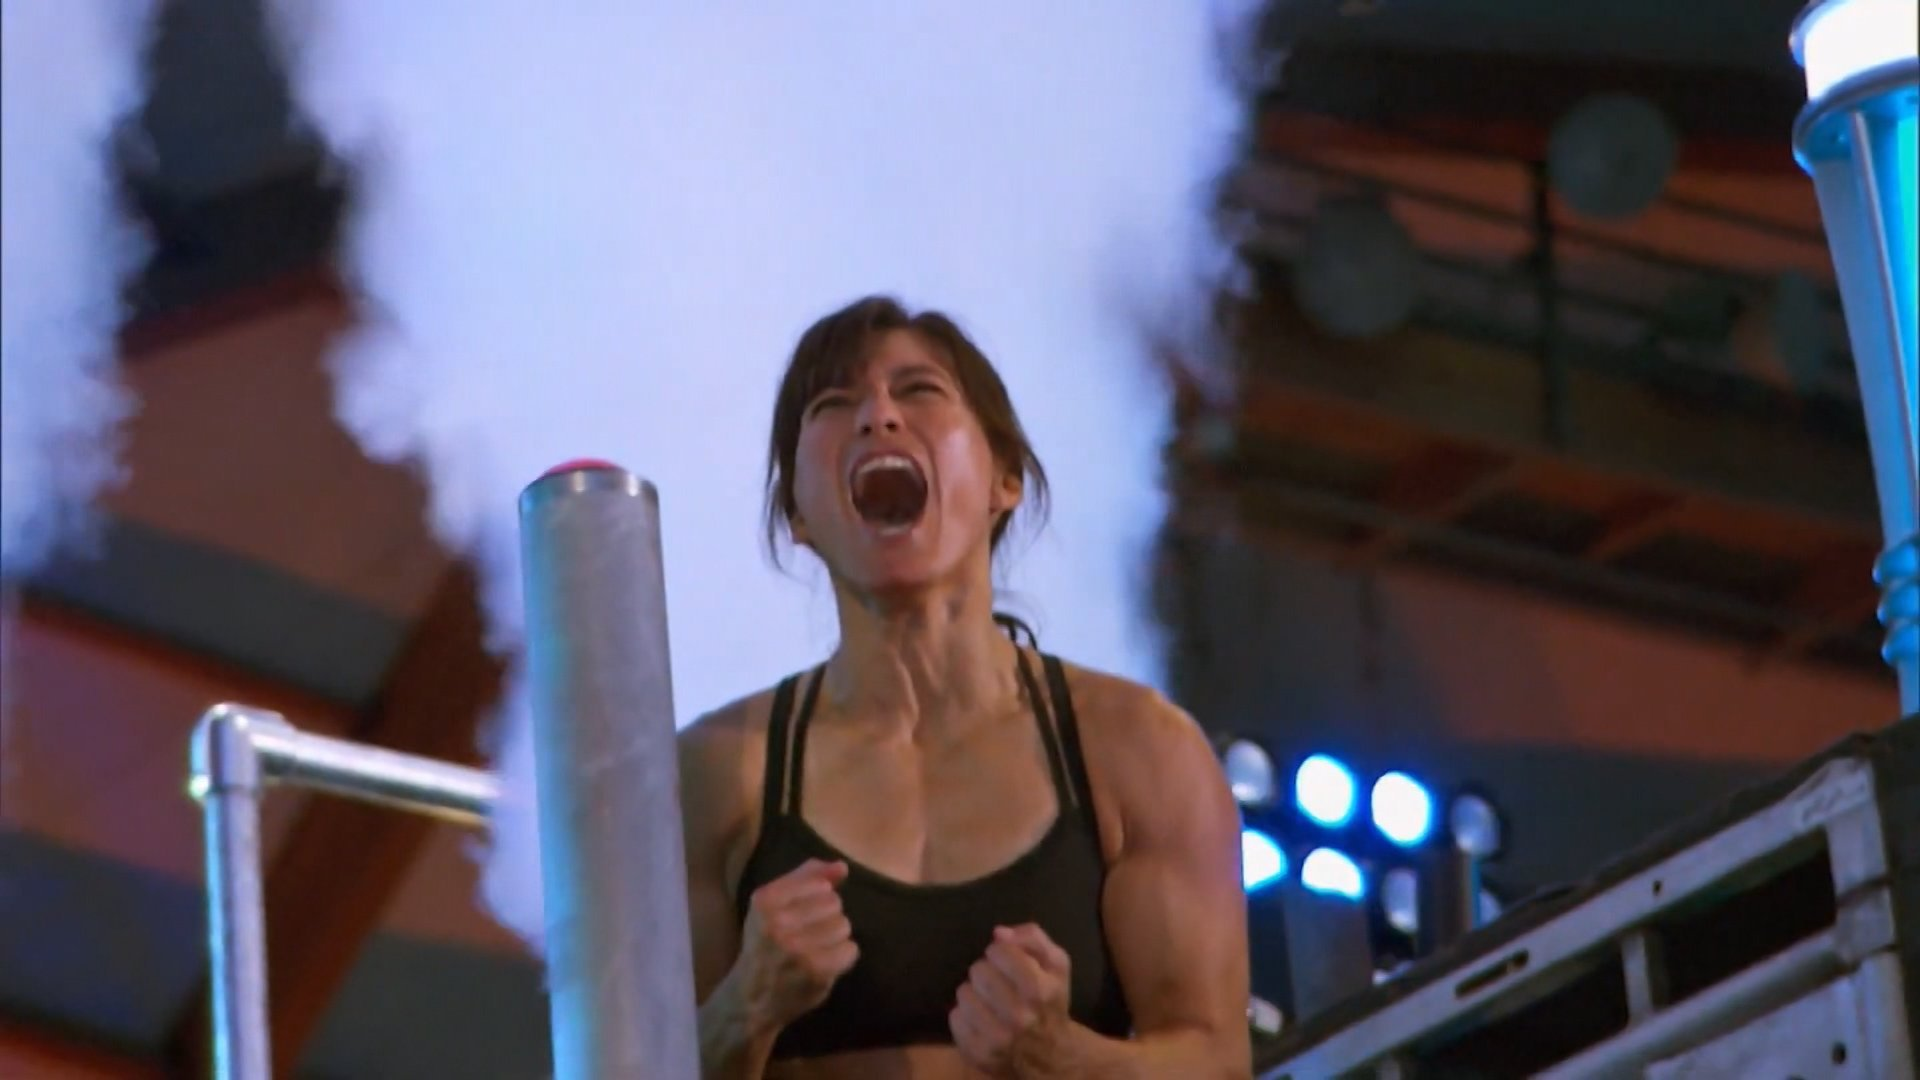 A 42-year-old woman became the first mother to conquer 'American Ninja Warrior' course